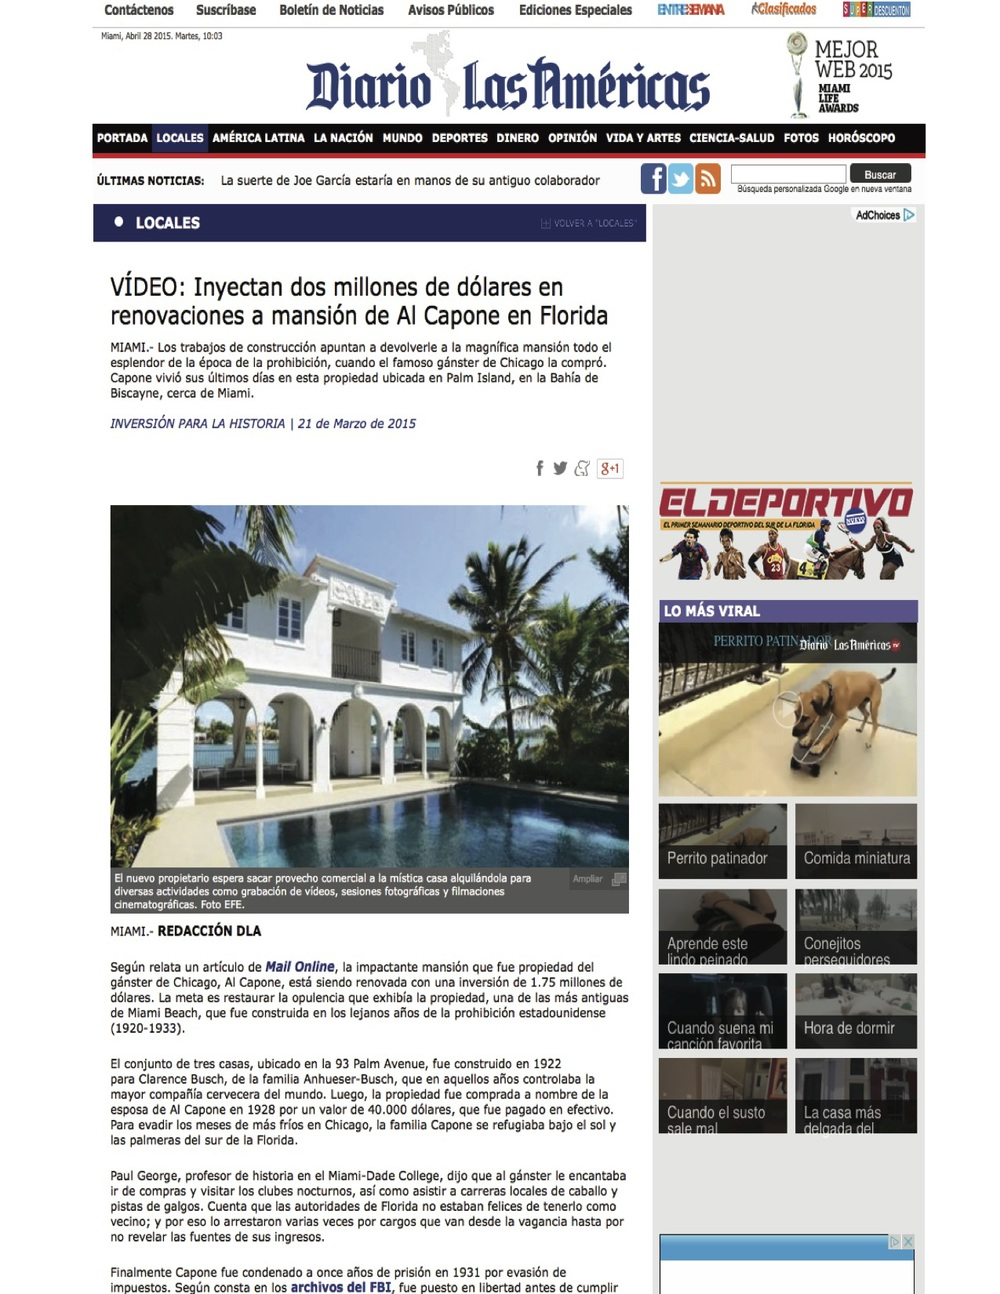 "<p><strong>DLA</strong><a href=""http://www.diariolasamericas.com/4842_locales/3009997_video-casa-capone-florida-recibe-dos-millones-dolares-renovaciones.html"" target=""_blank"">View Article →</a></p>"